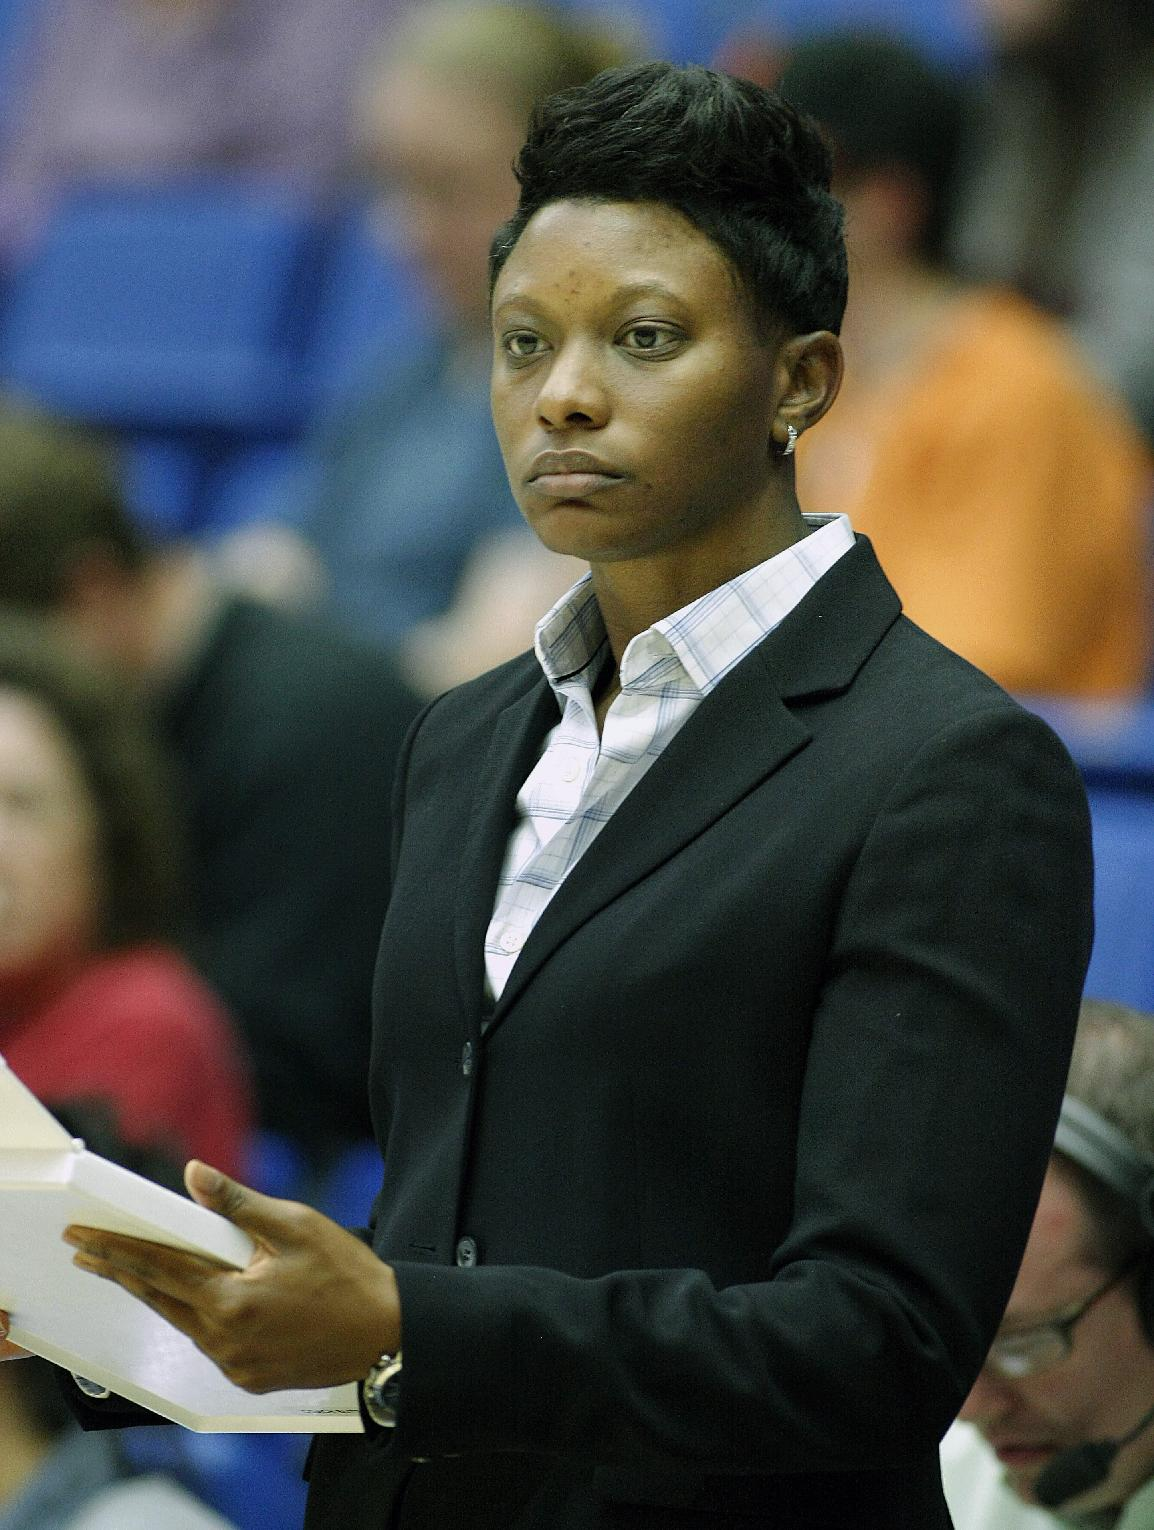 Arizona's Head Coach Niya Butts stands on the sideline before the start of an NCAA college basketball game against Stanford on Friday, Jan. 17, 2014, in Tucson, Ariz